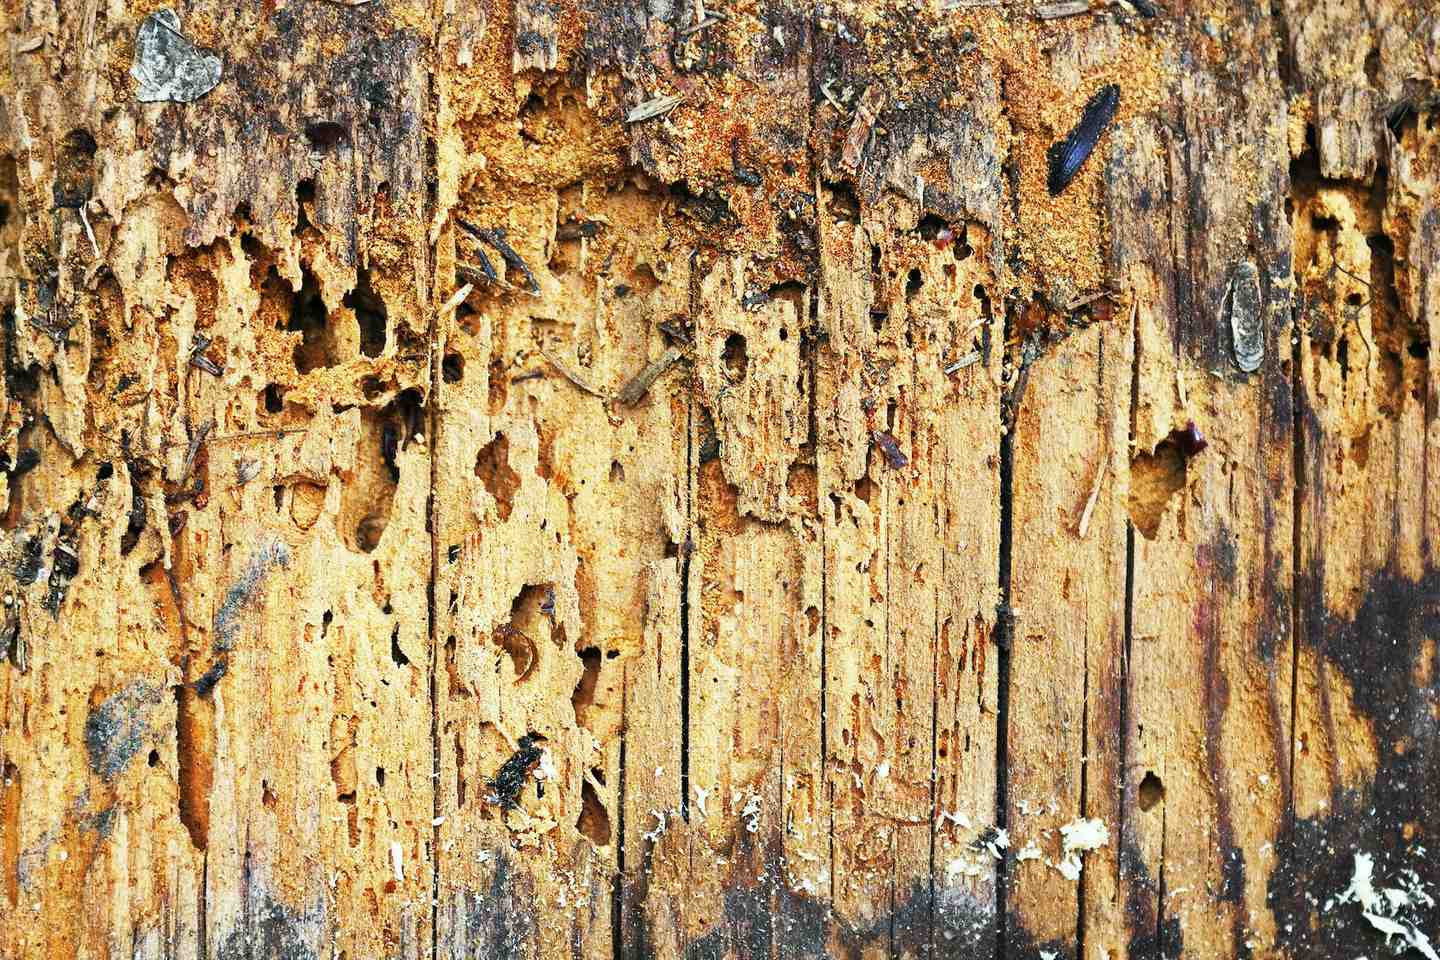 Woodworm damage close up showing damp timber and characteristic holes caused by Woodboring Beetle